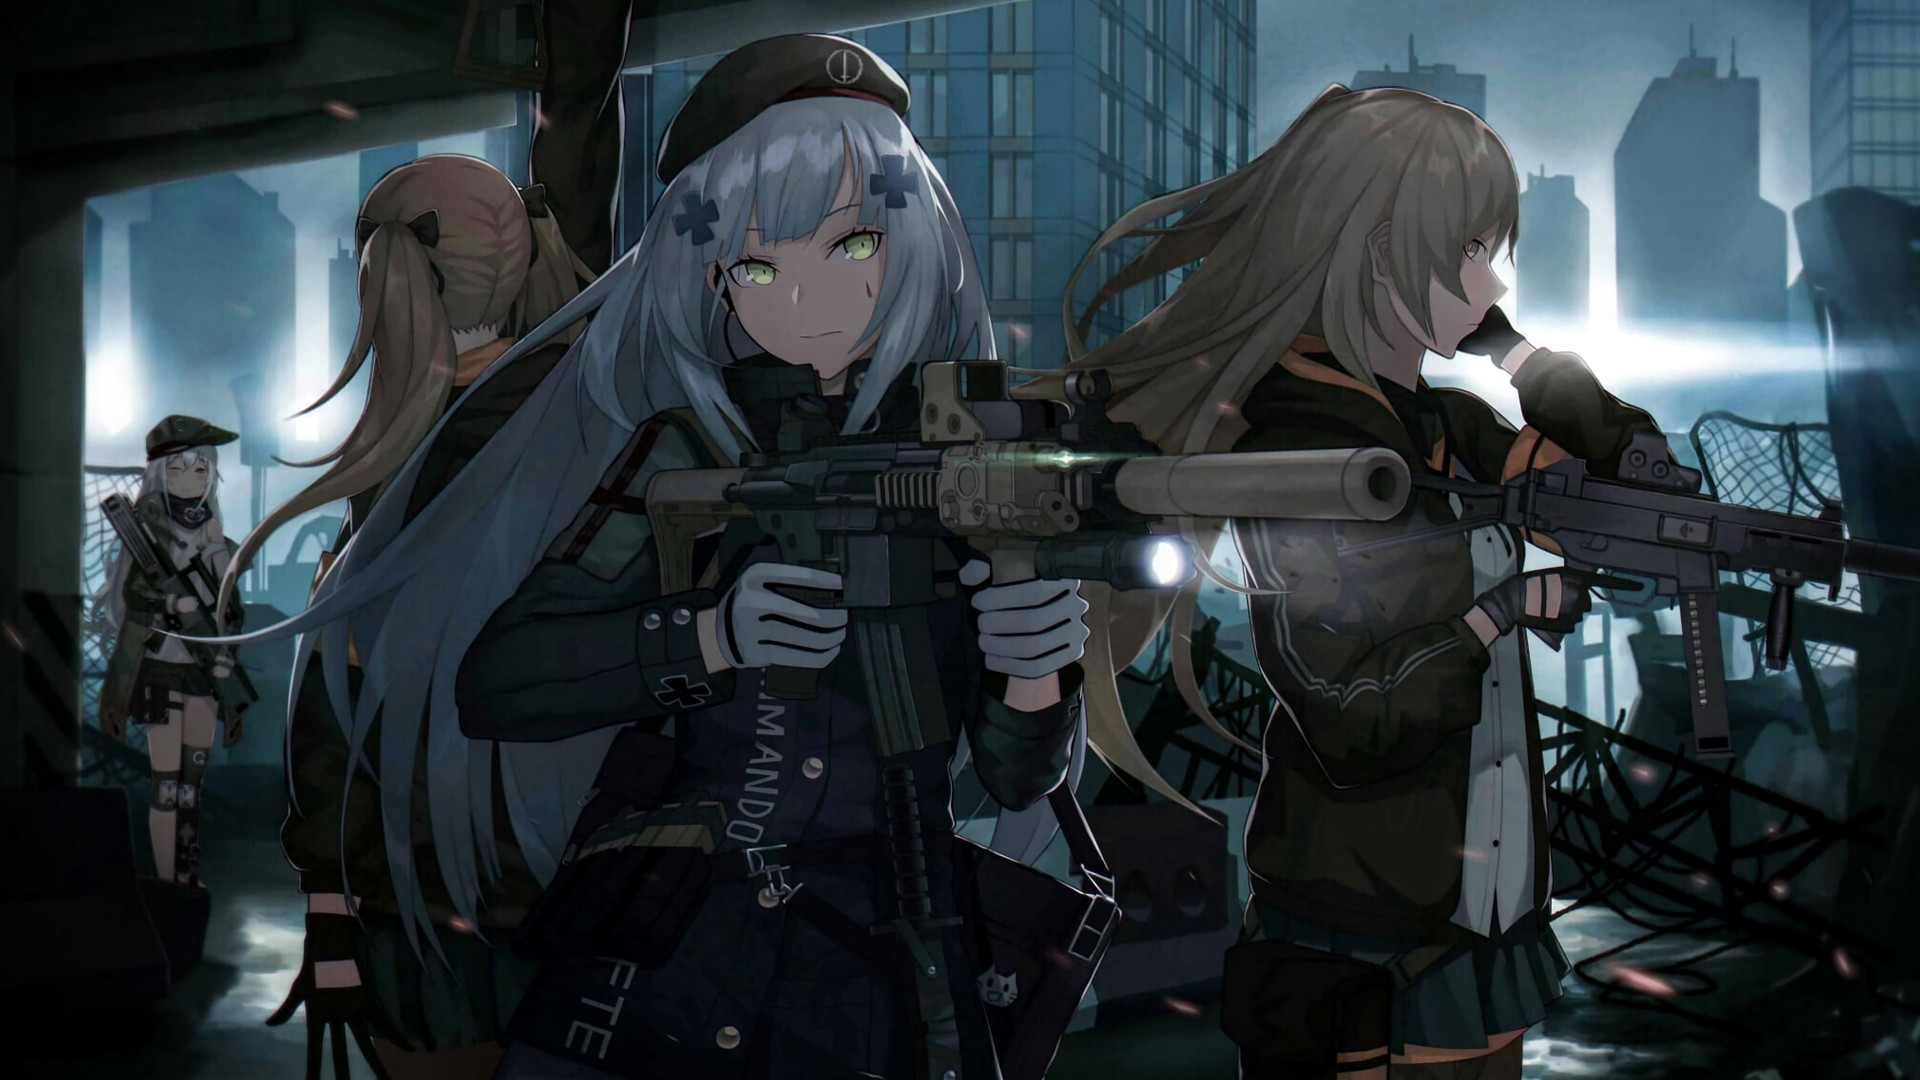 Anime Girls With Guns Wallpaper Download Full